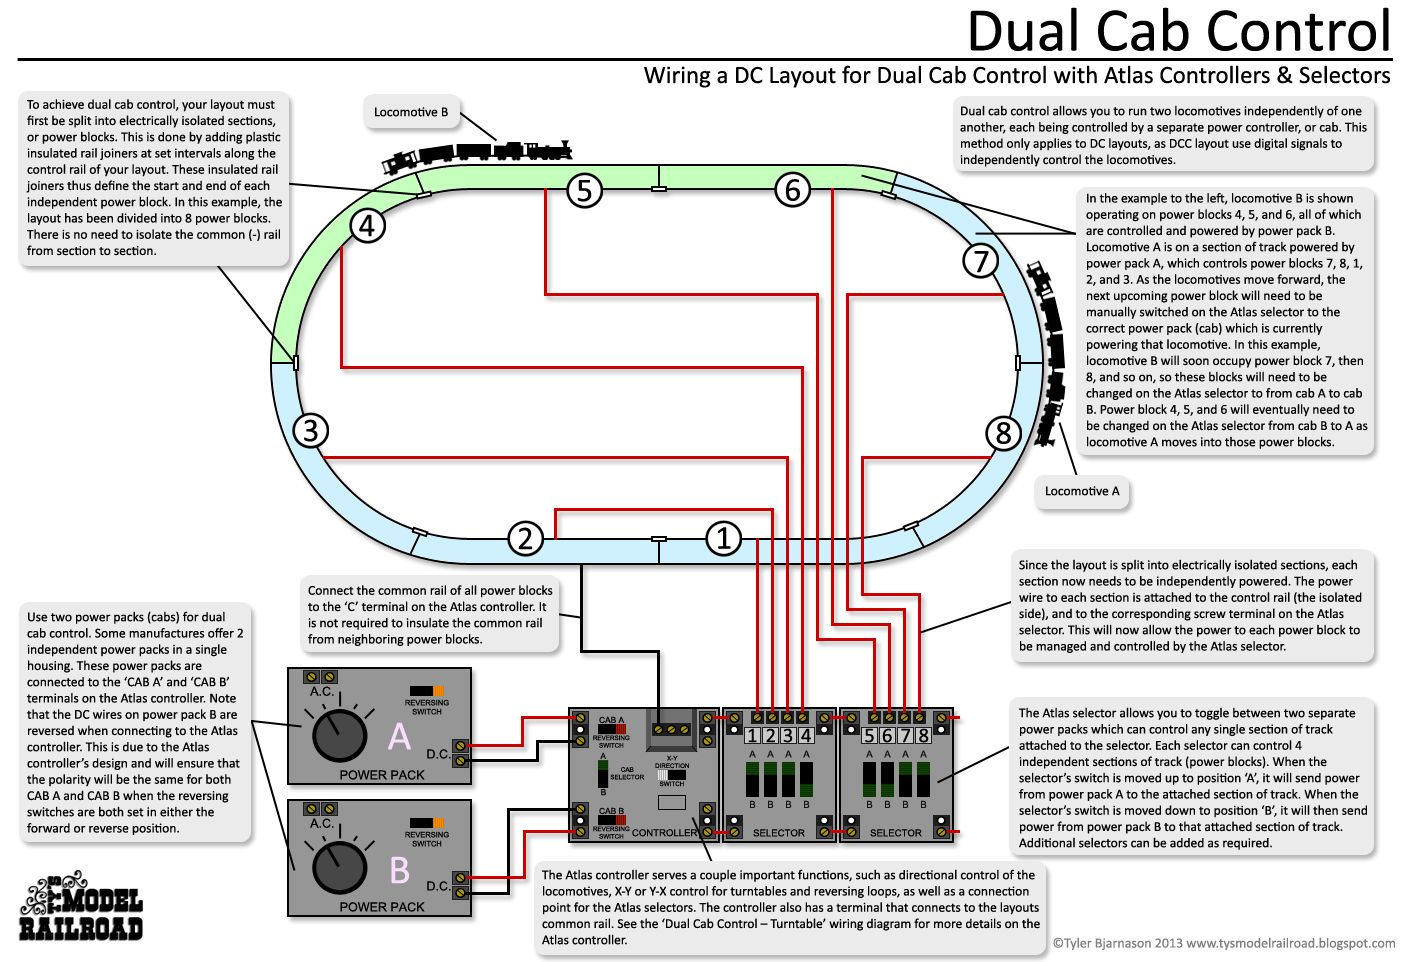 Addition Taco Sr503 Wiring Diagram 4 Moreover Taco Pump Wiring Diagram